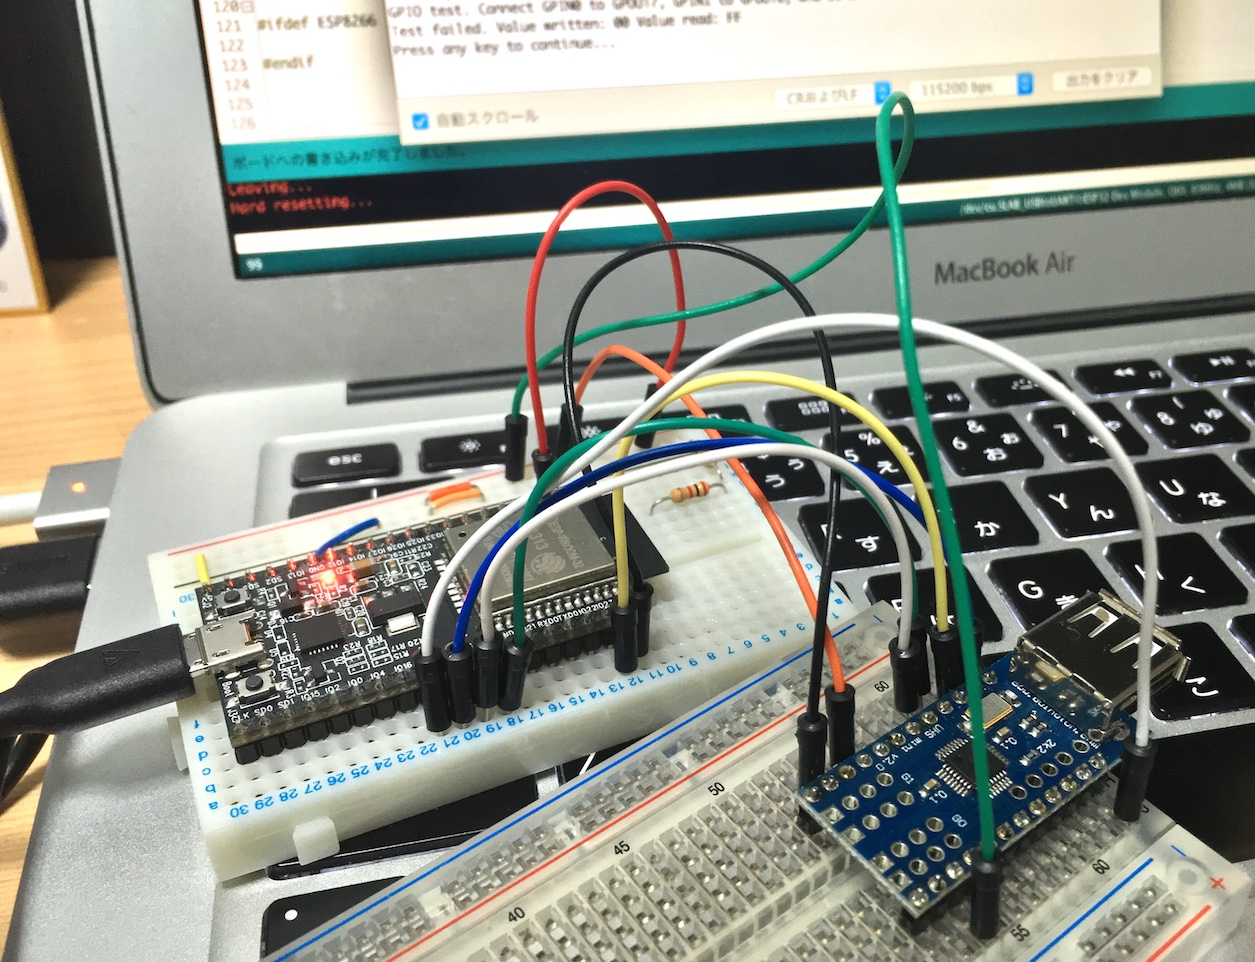 ESP32 support request · Issue #324 · felis/USB_Host_Shield_2 0 · GitHub